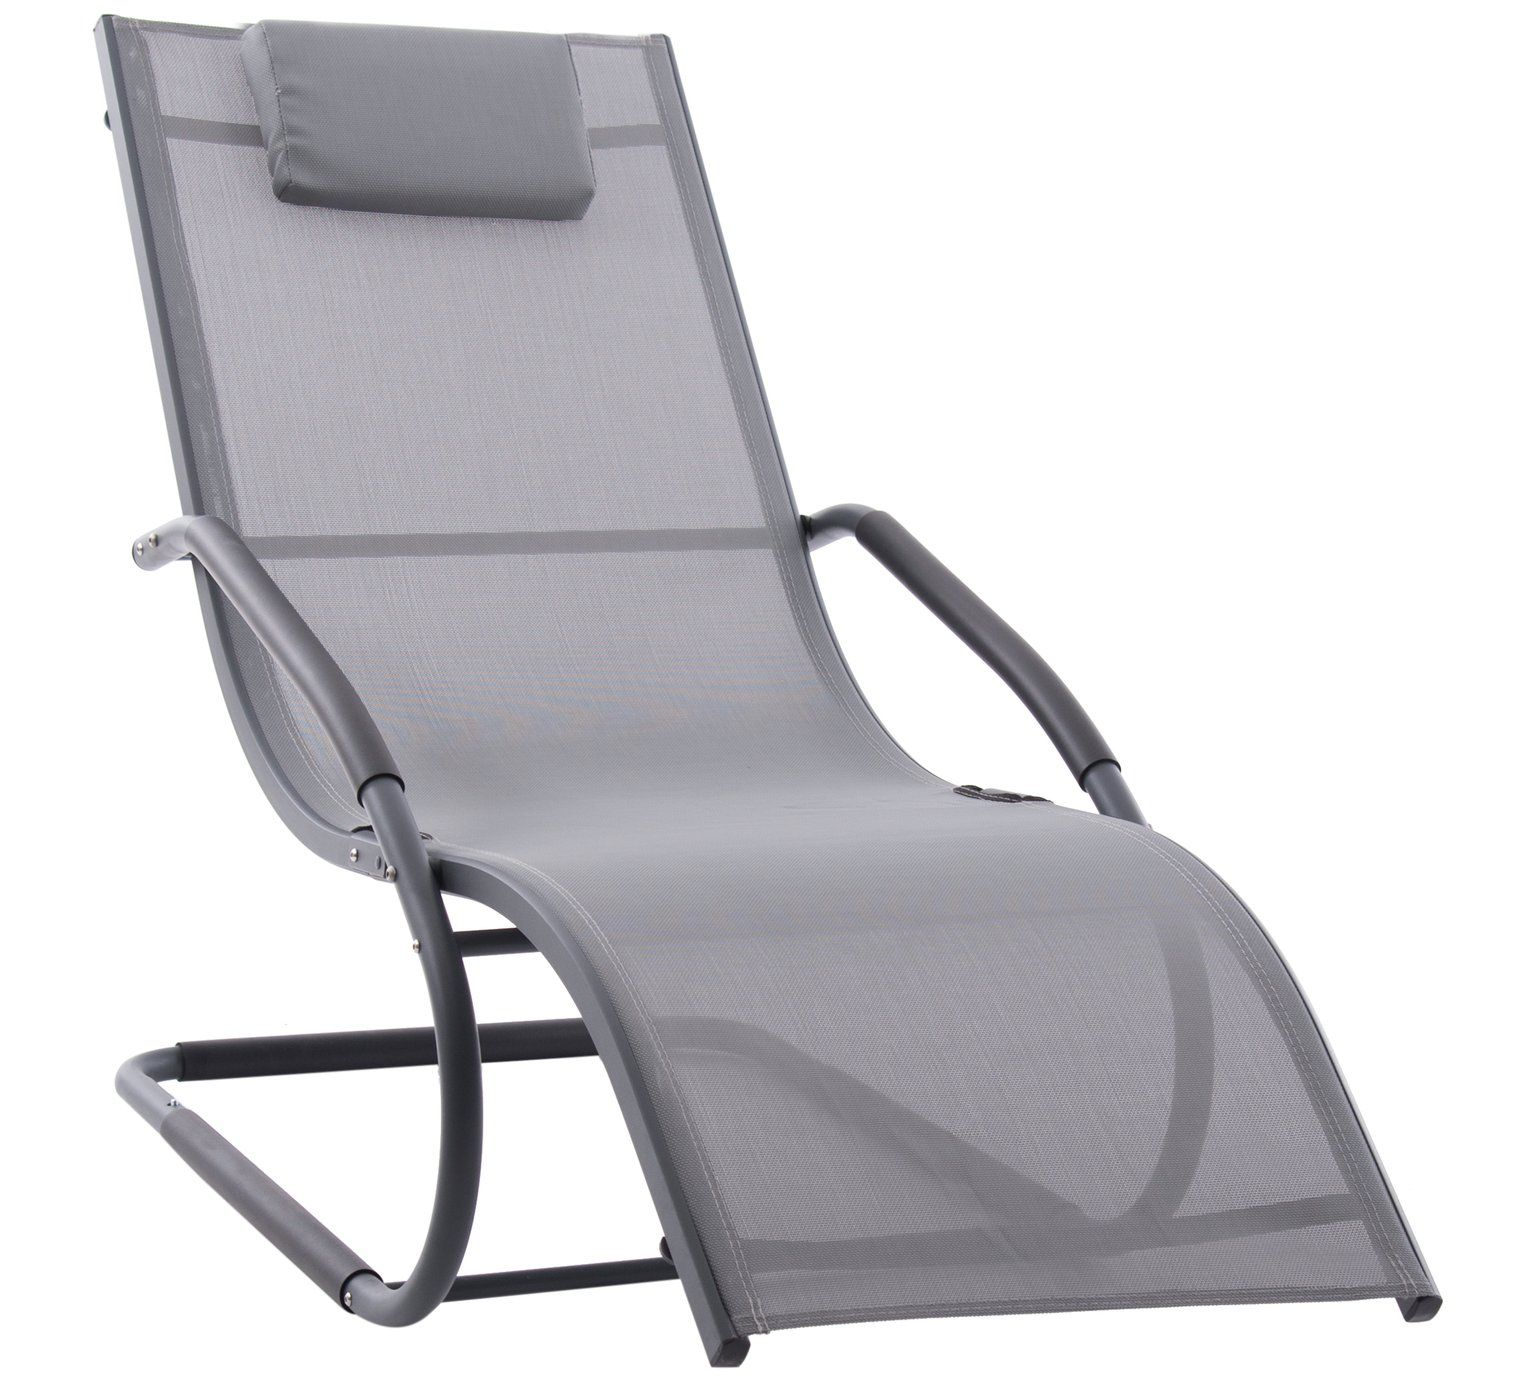 Buy Wave Lounger Grey On Matte Black At Argos Co Uk Visit Argos Co Uk To Shop Online For Garden Chairs And Sun Lounger Outdoor Recliner Garden Chairs Design